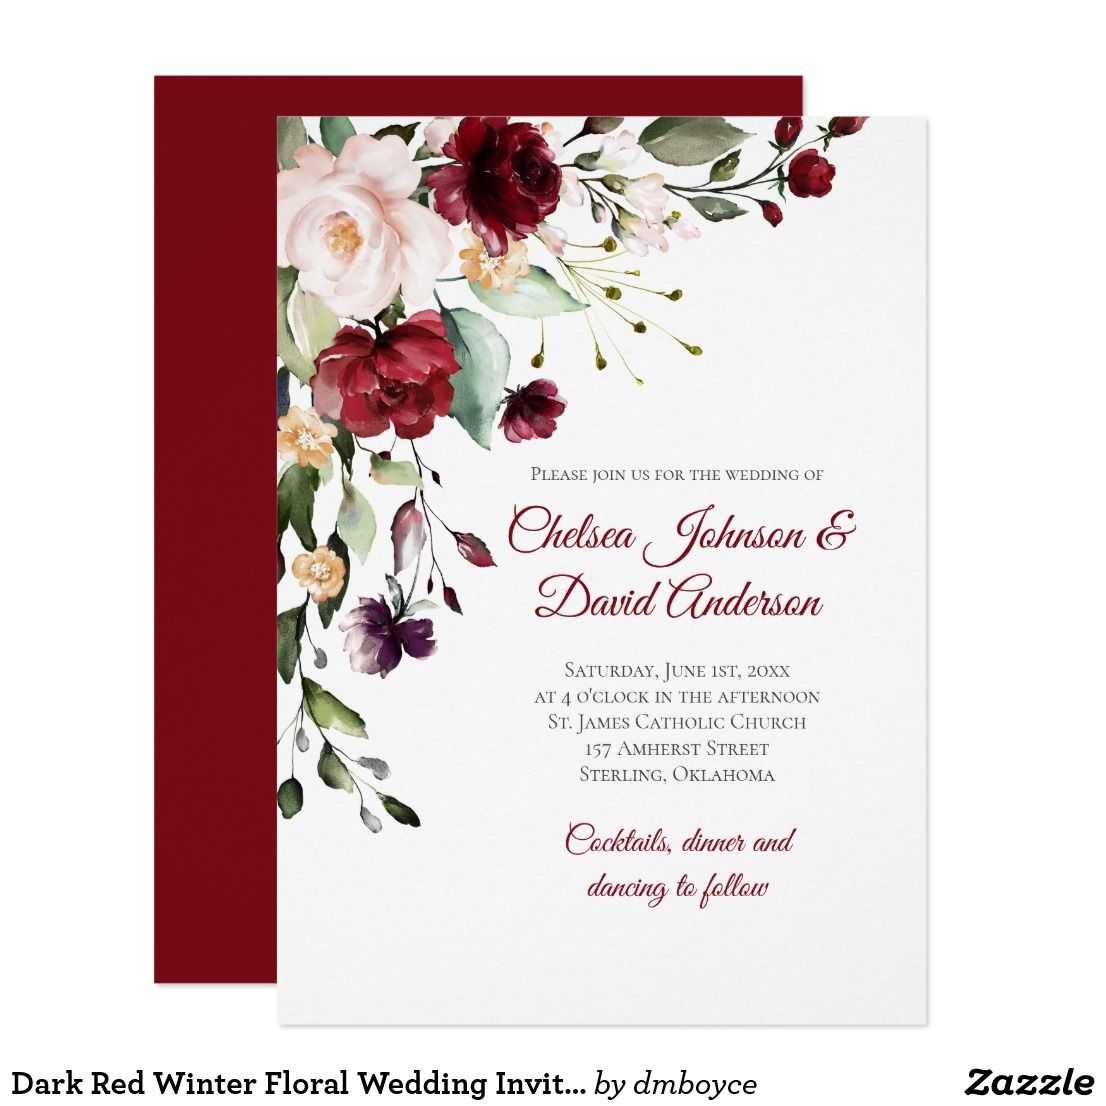 Dark Red Winter Floral Wedding Invitation | Wedding & Bridal Shower ...